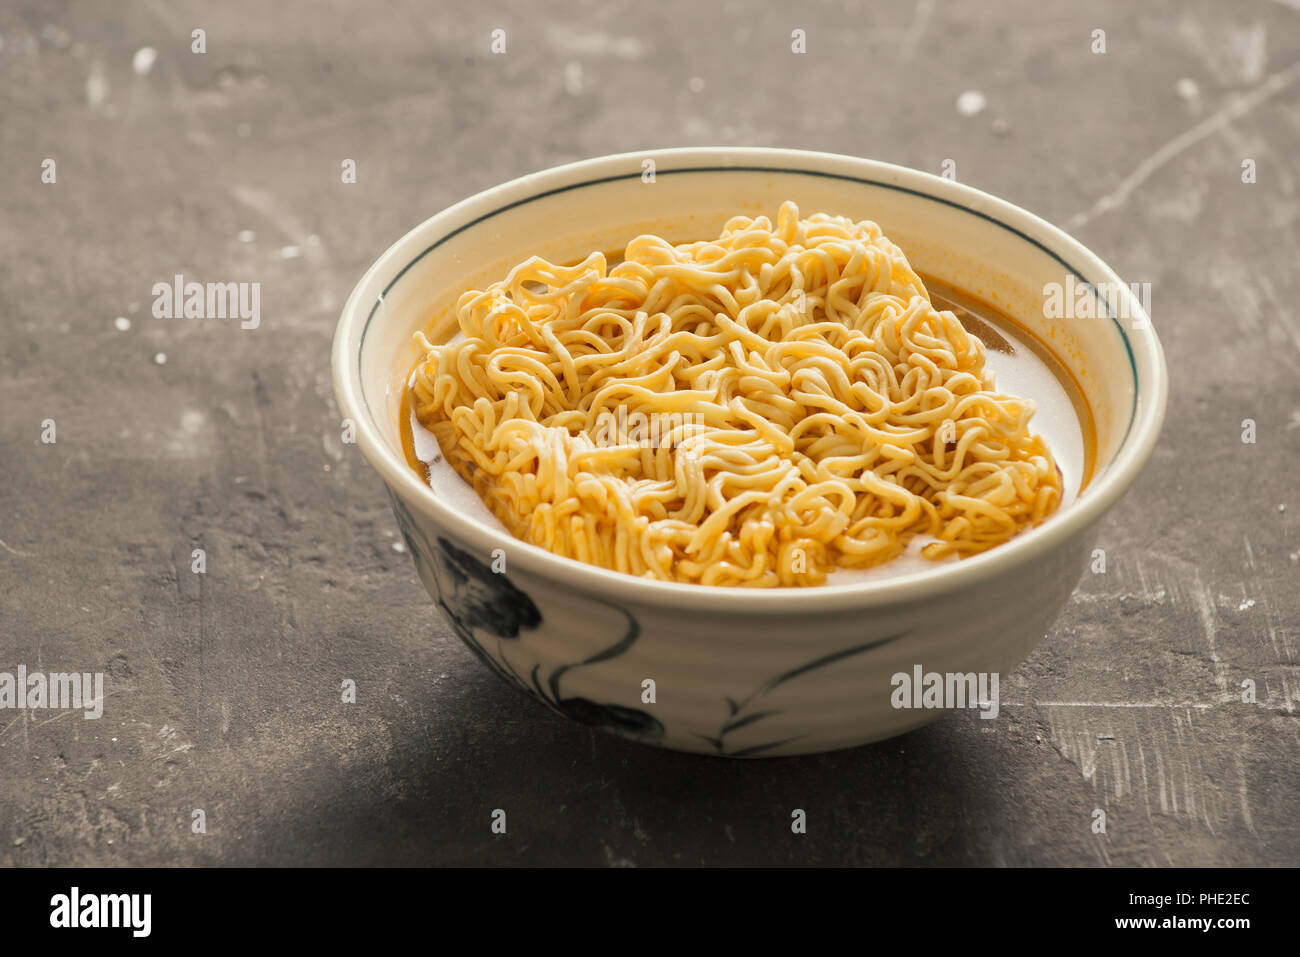 Instant noodles in bowl and vegetable side dishes on stone background. Quick & easy food concept. - Stock Image